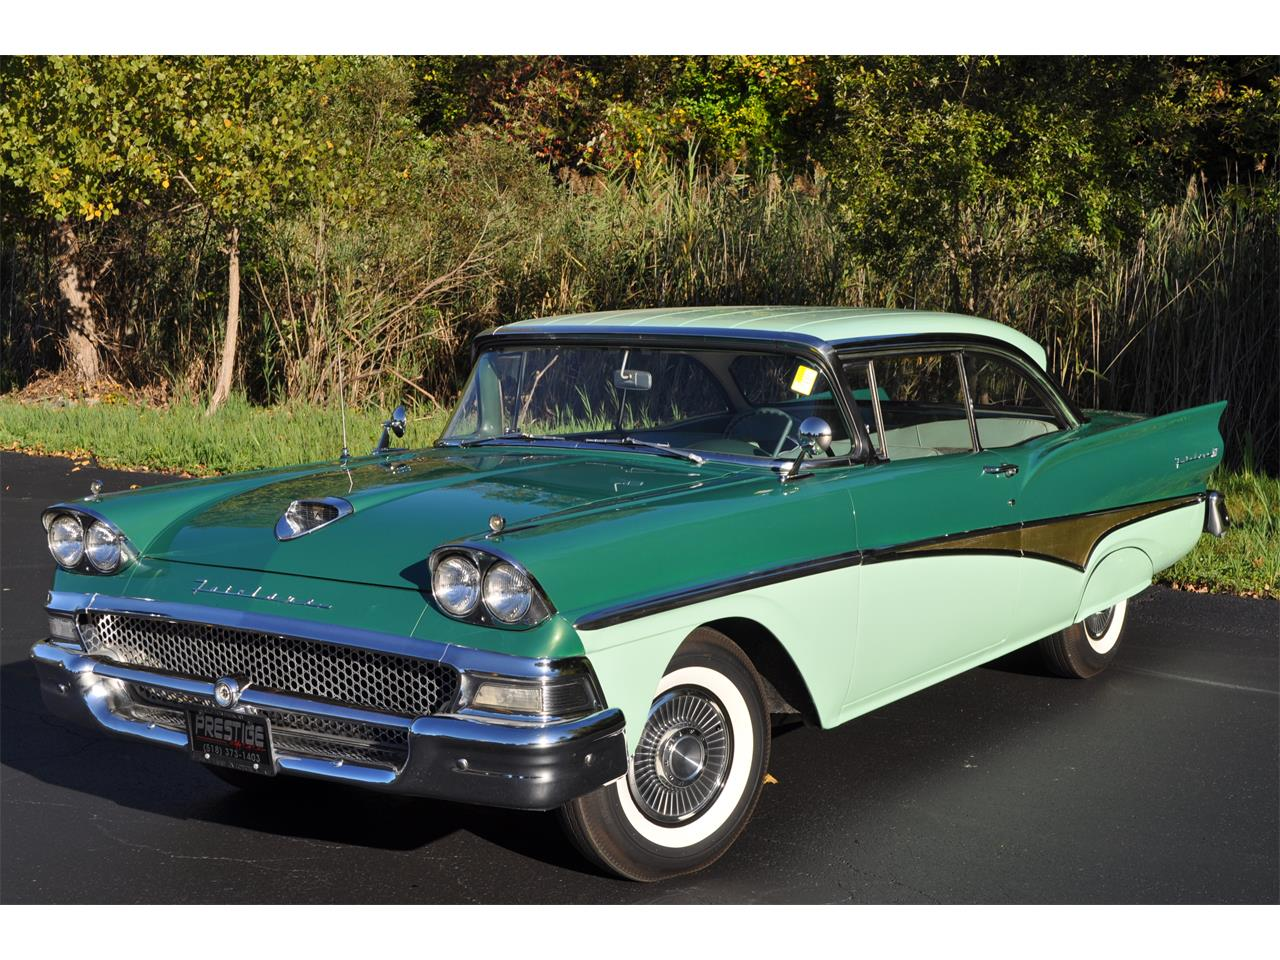 Large picture of 58 fairlane 500 nni4